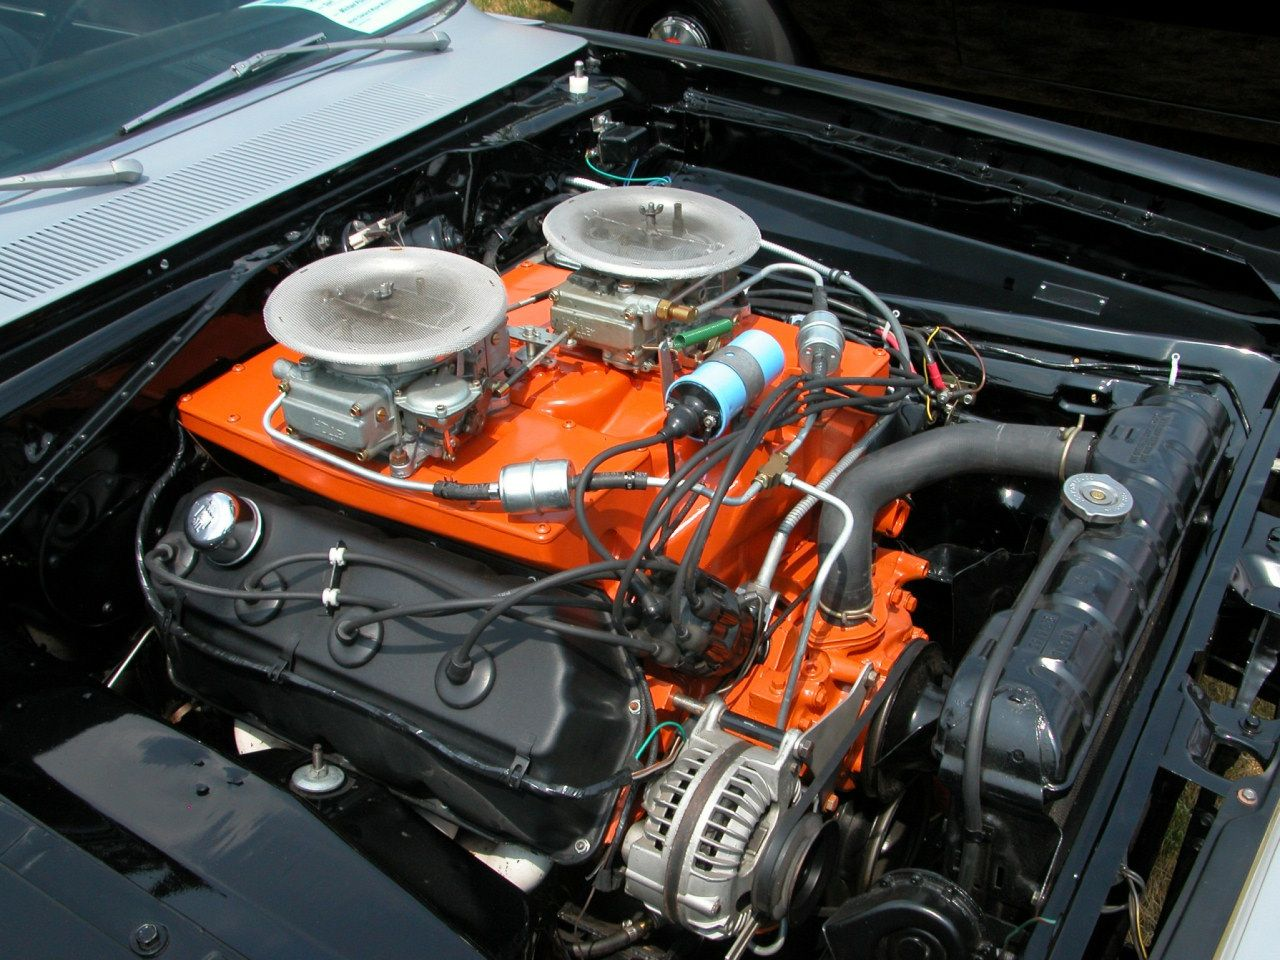 426 Hemi With Cross Ram Manifold And Twin 4 Barrell Holleys In A